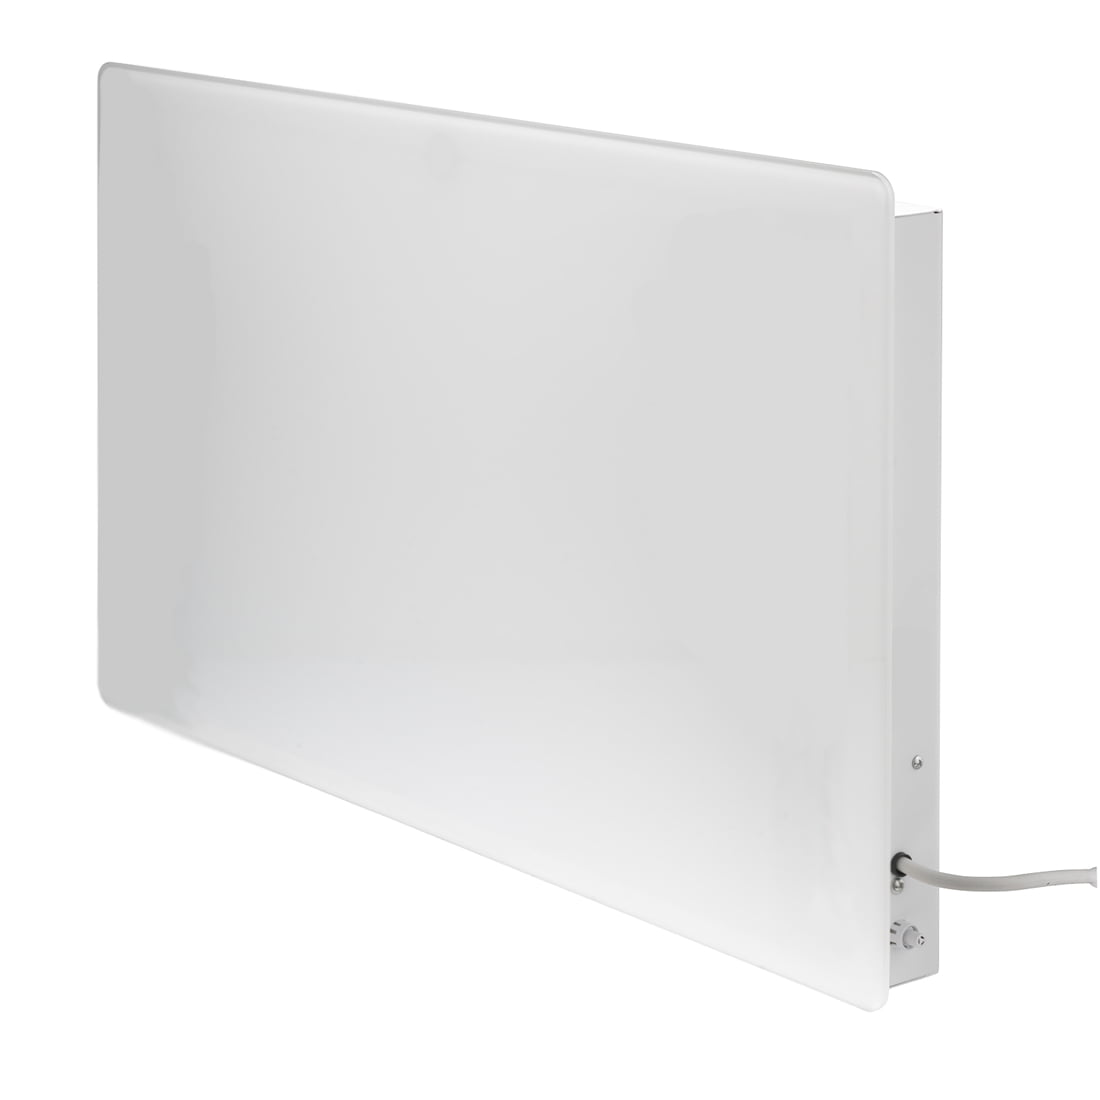 Vitra WiFi Electric Panel Heater, Wall Mounted or Portable 8